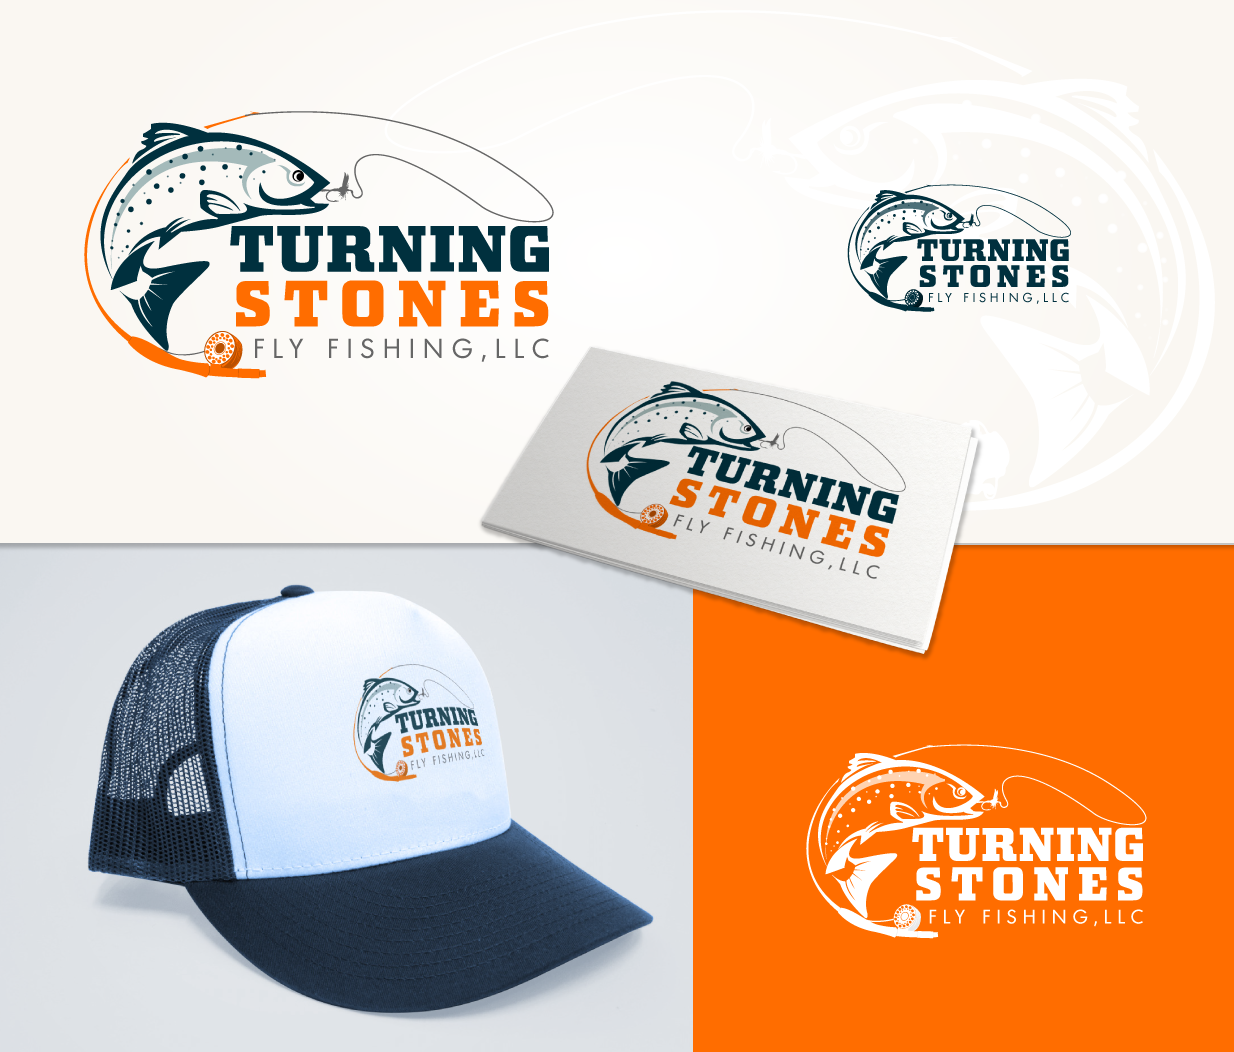 Logo Design by Tarek Khenfir - Entry No. 34 in the Logo Design Contest New Logo Design for Turning Stones Fly Fishing.